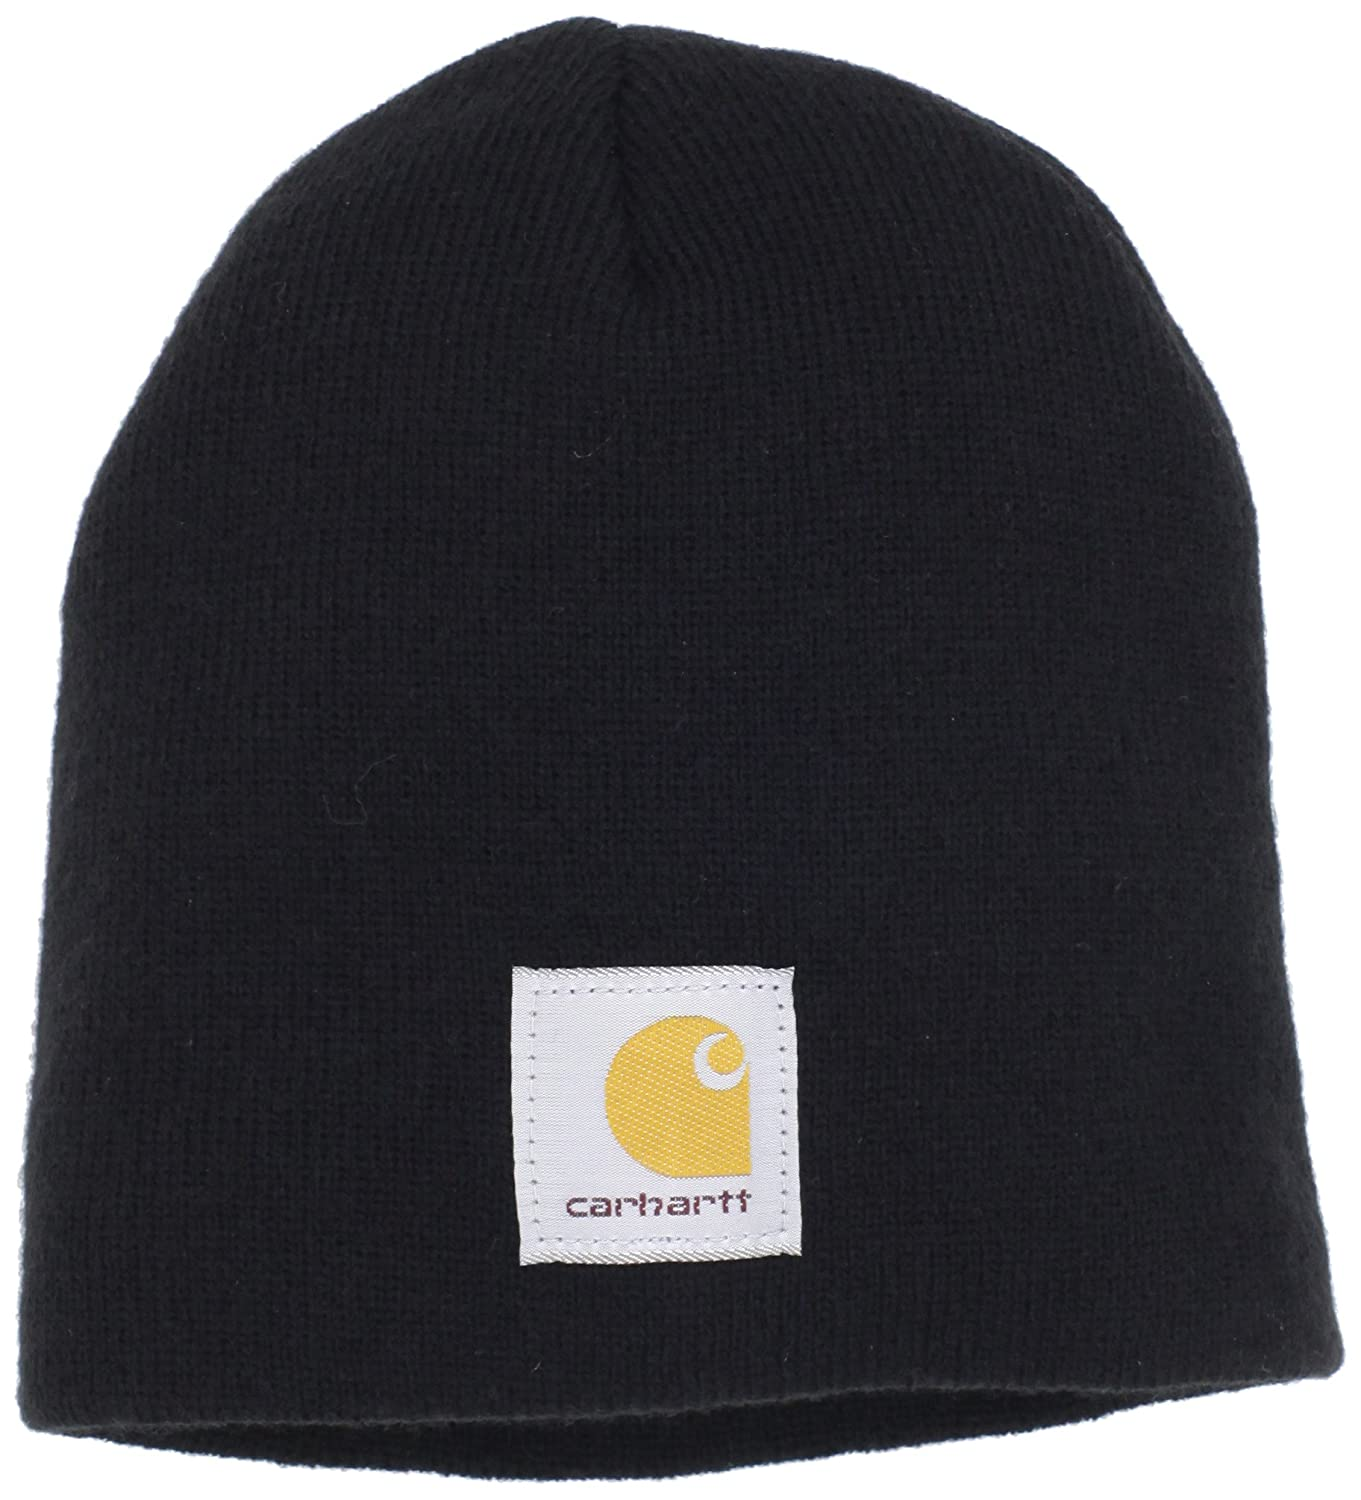 8c8f357ee4f66f Carhartt Men's Acrylic Knit Hat, Black, One Size at Amazon Men's Clothing  store: Skull Caps